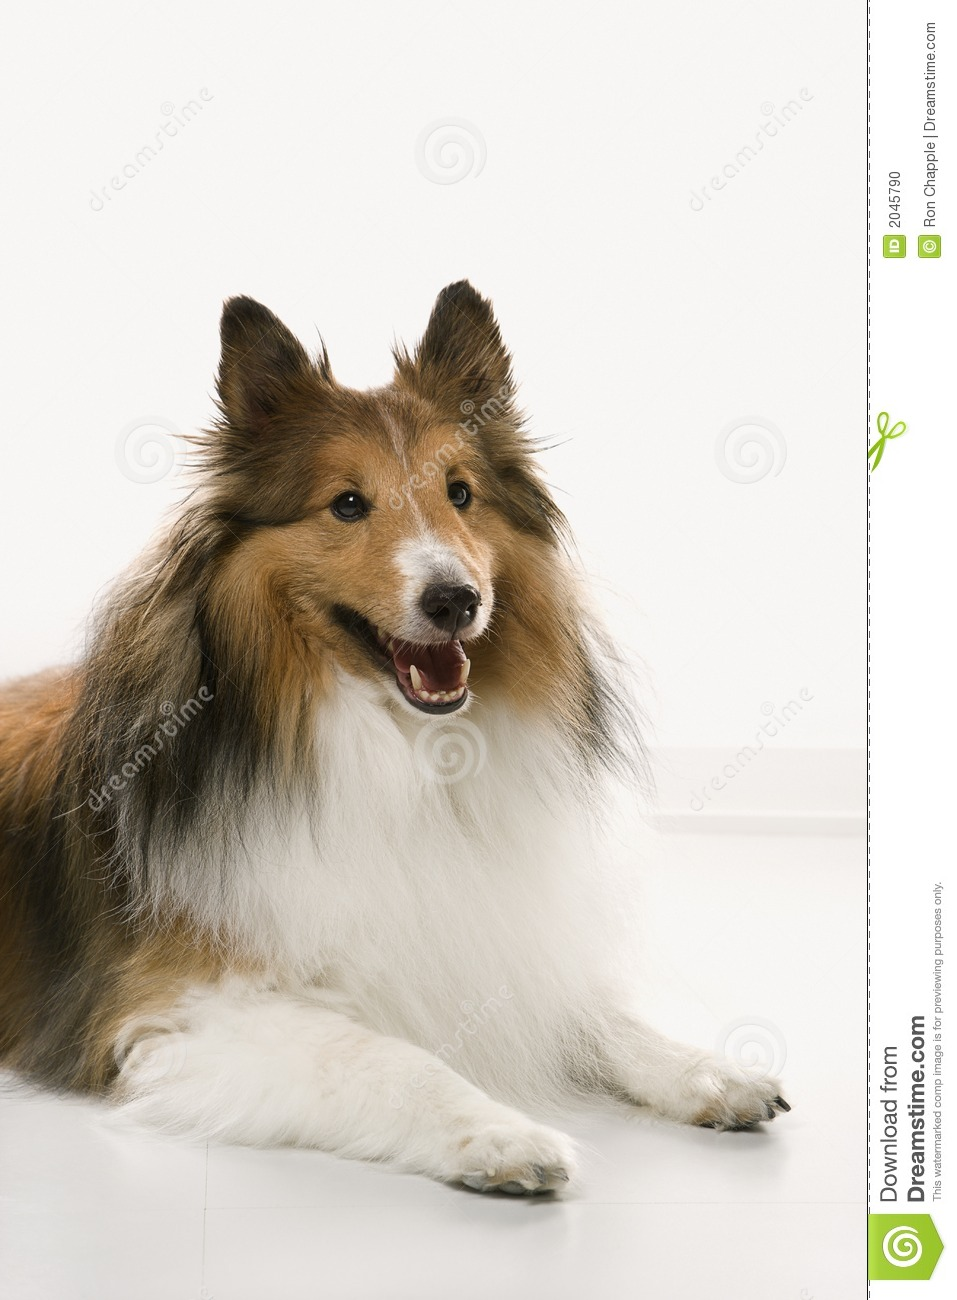 Collie dog. stock photo. Image of colour, down, breed ...